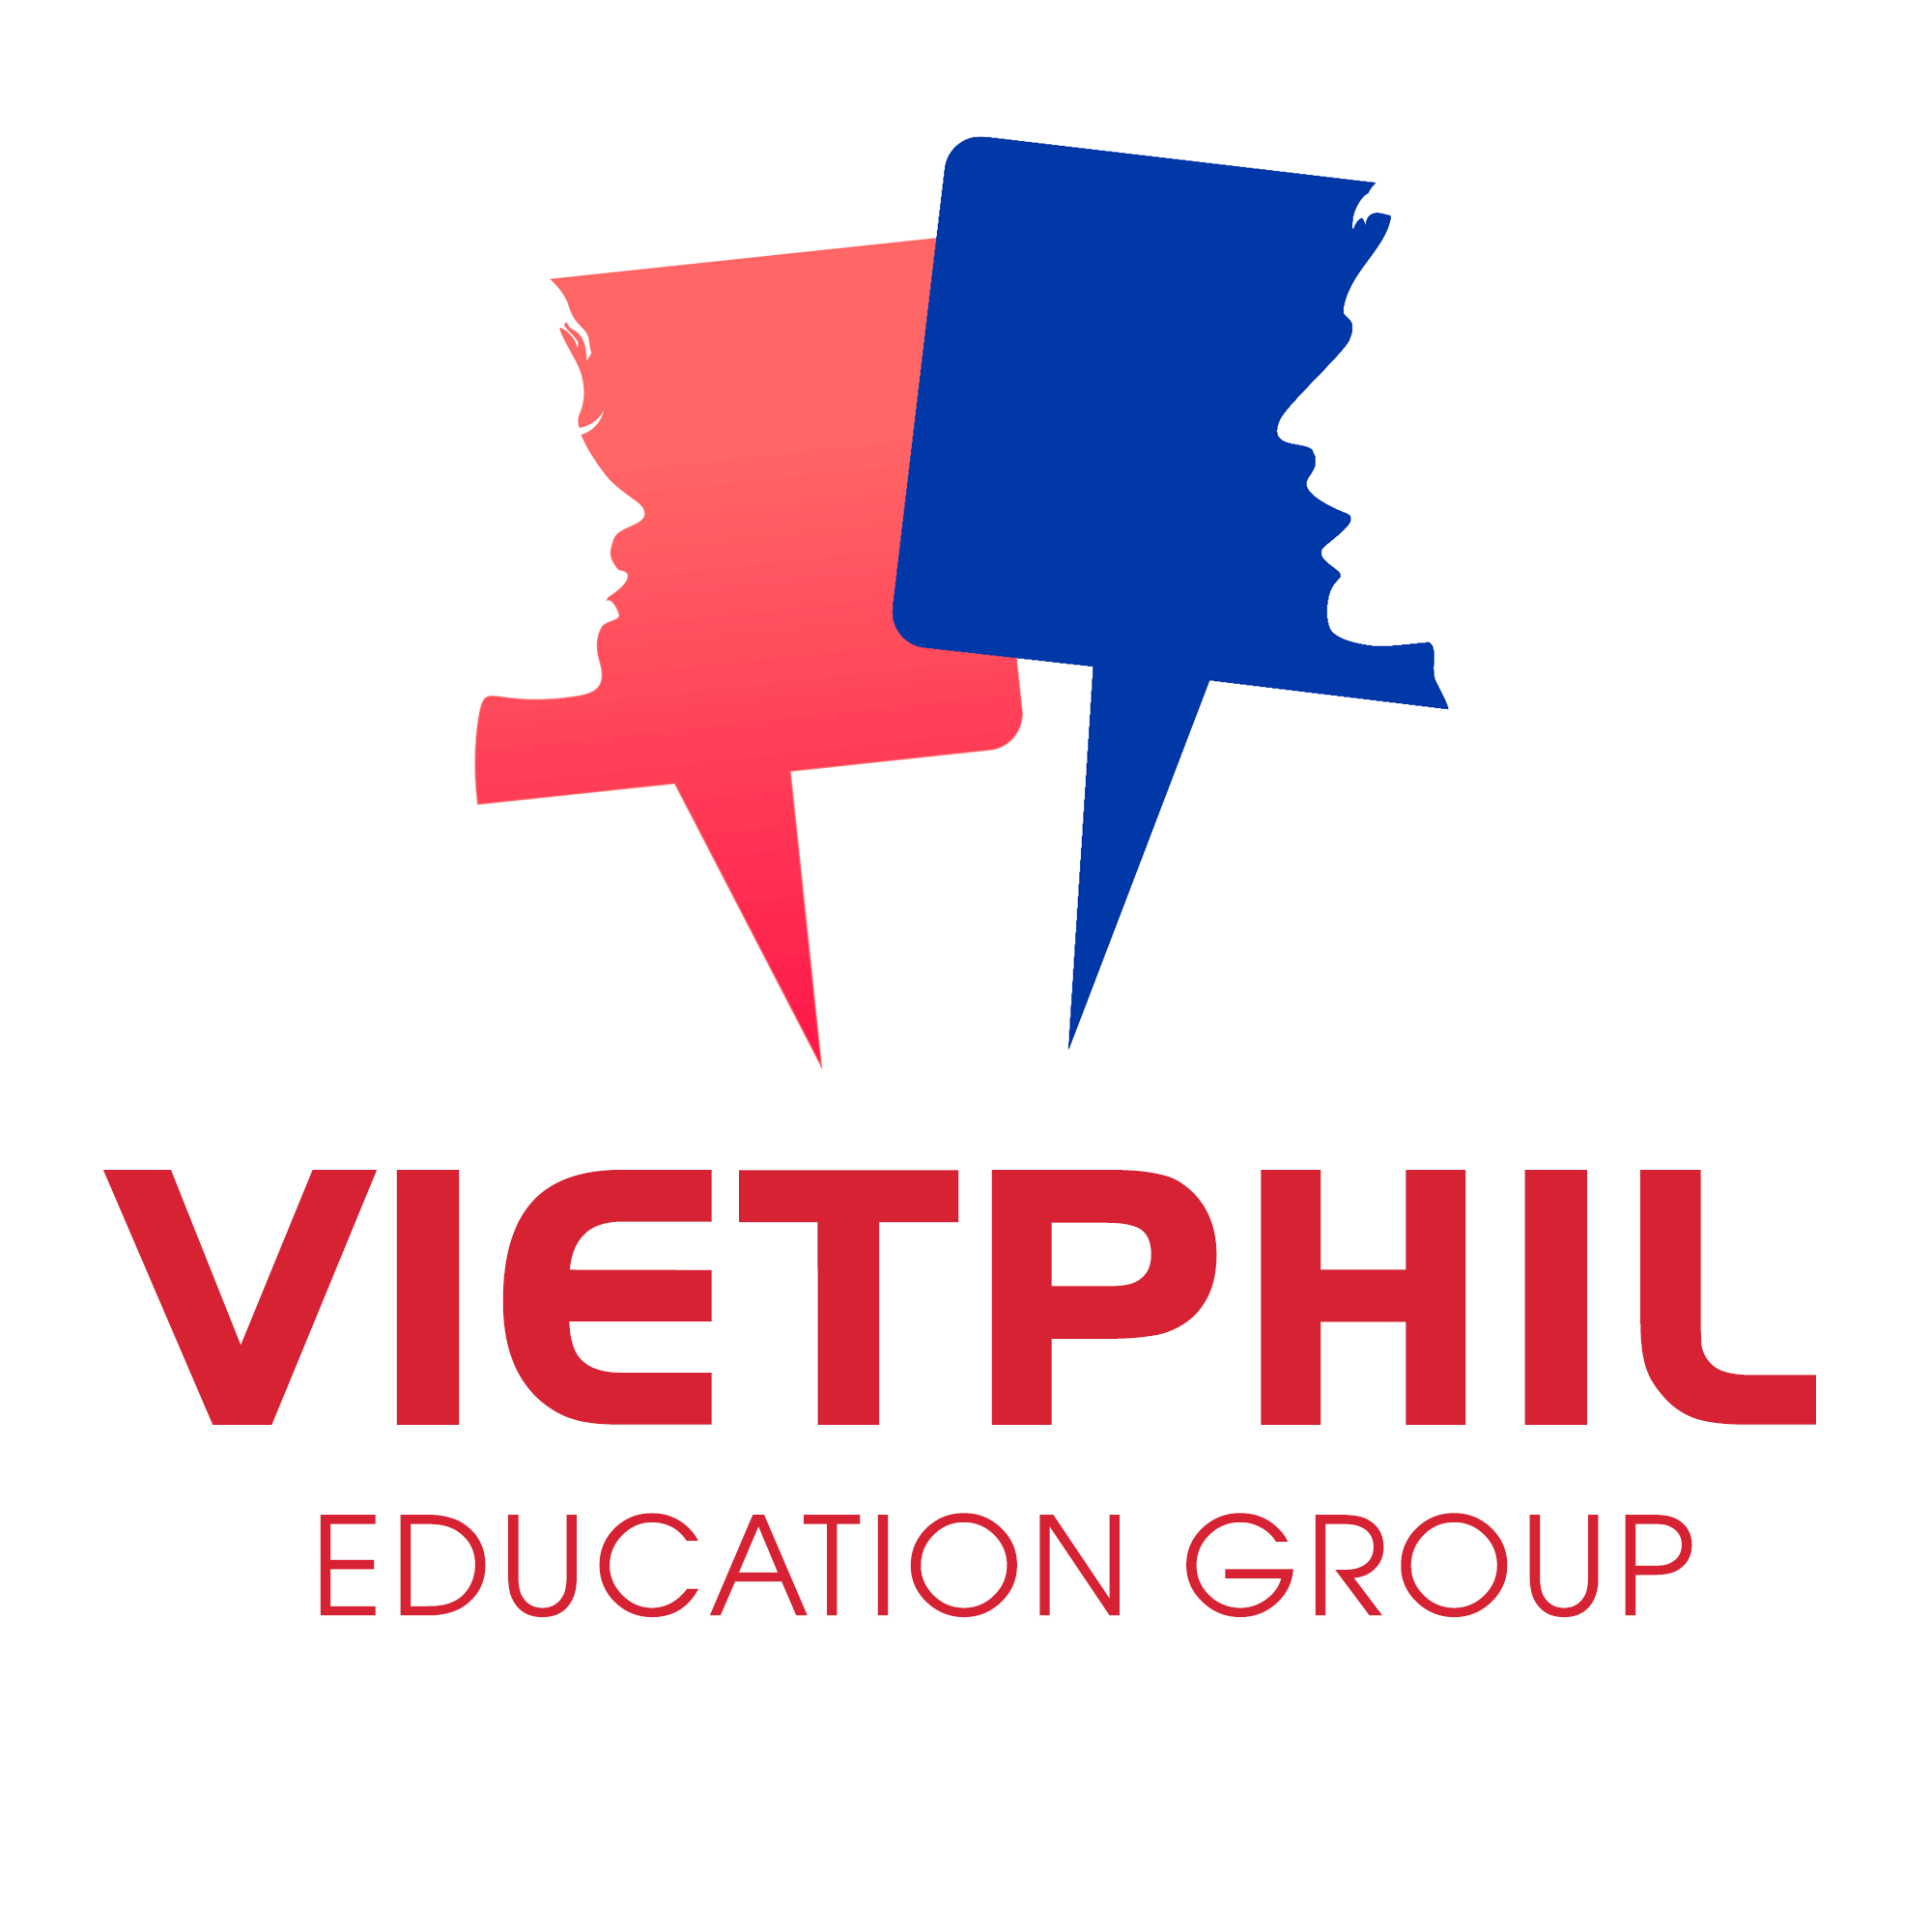 VietPhil Education Group